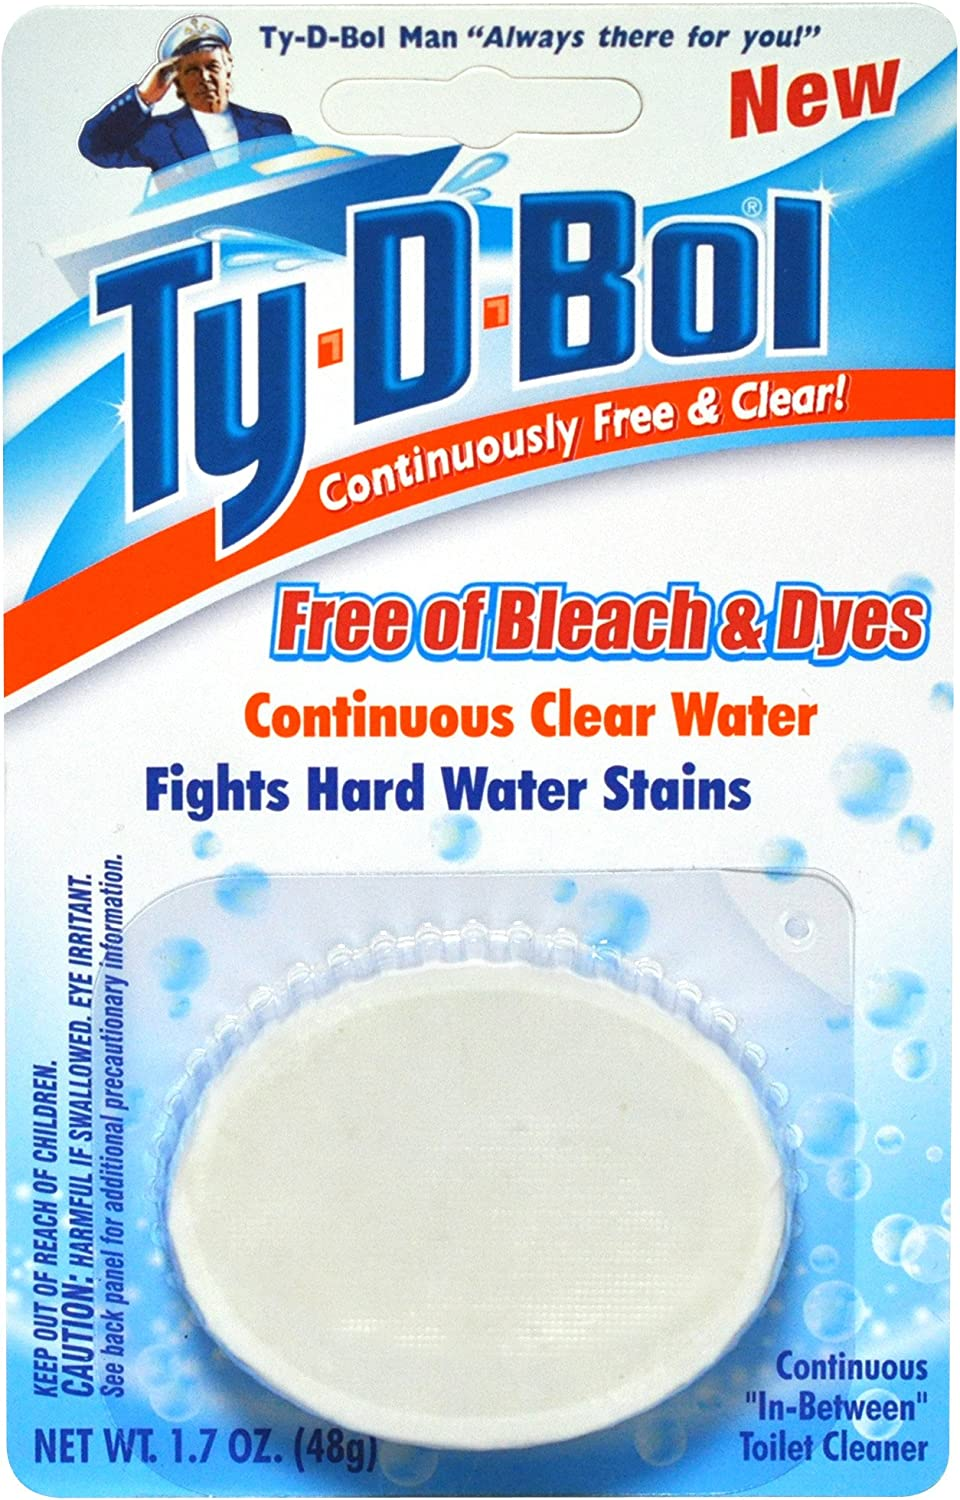 Ty-D-Bol Spring new work Free and Clear Toilet Deodorizes Cleaner To NEW before selling Cleans